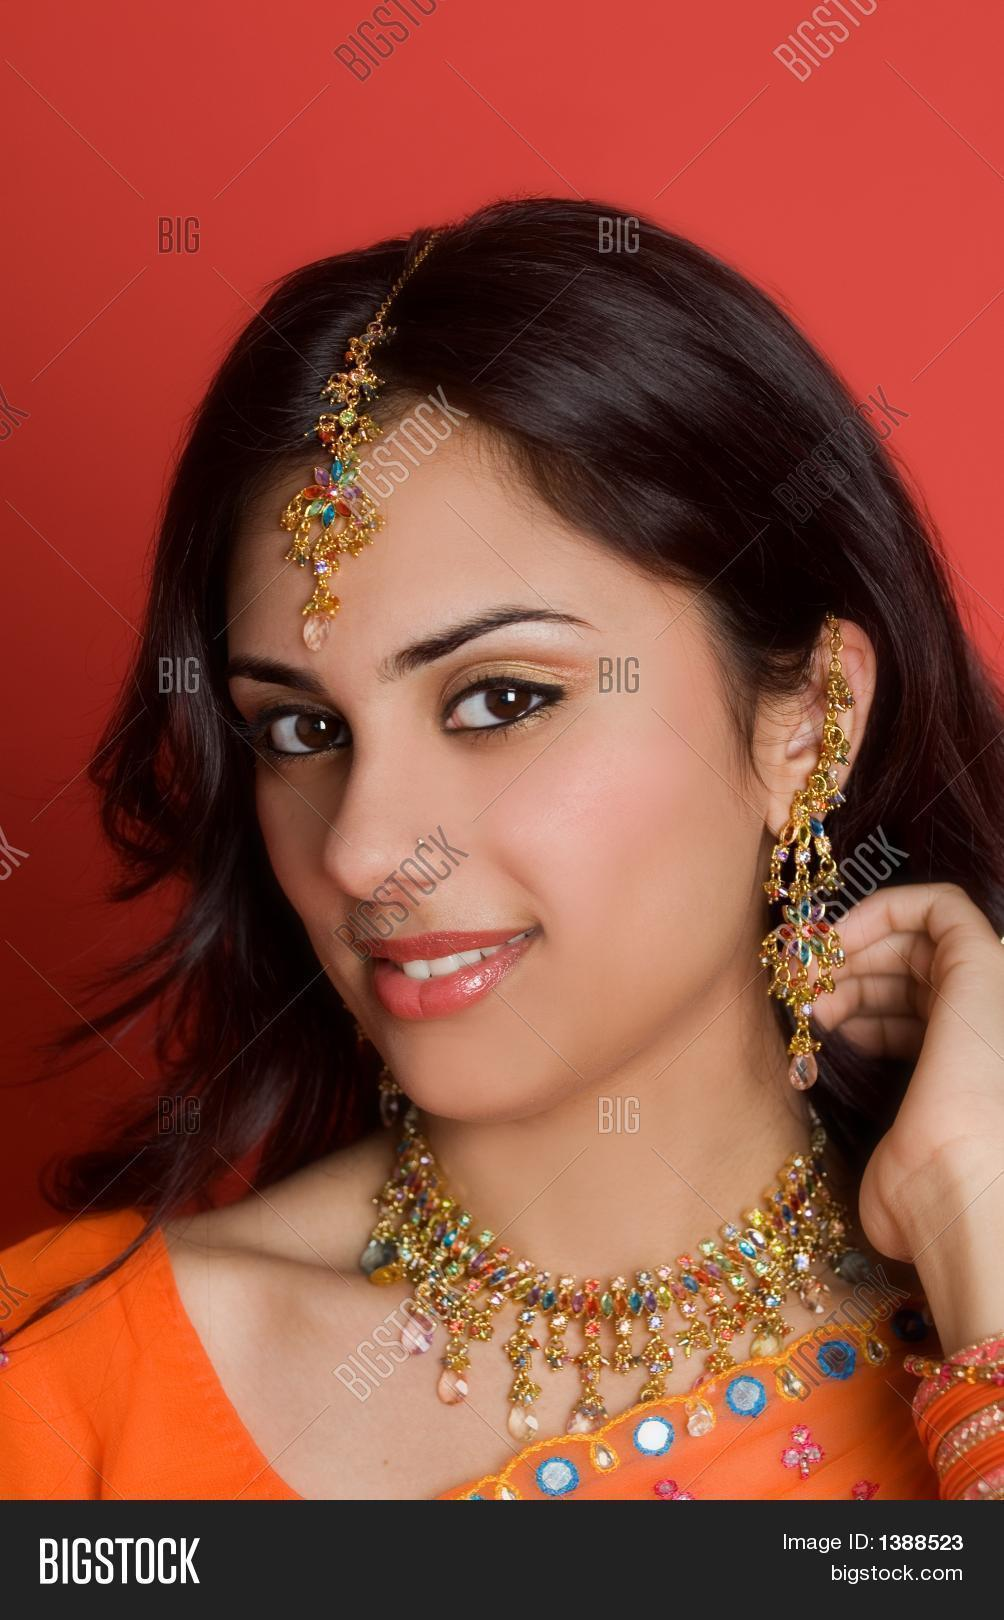 leeds hindu single women Singlemuslimcom the world's leading islamic muslim singles, marriage and shaadi introduction service over 2 million members online register for free.